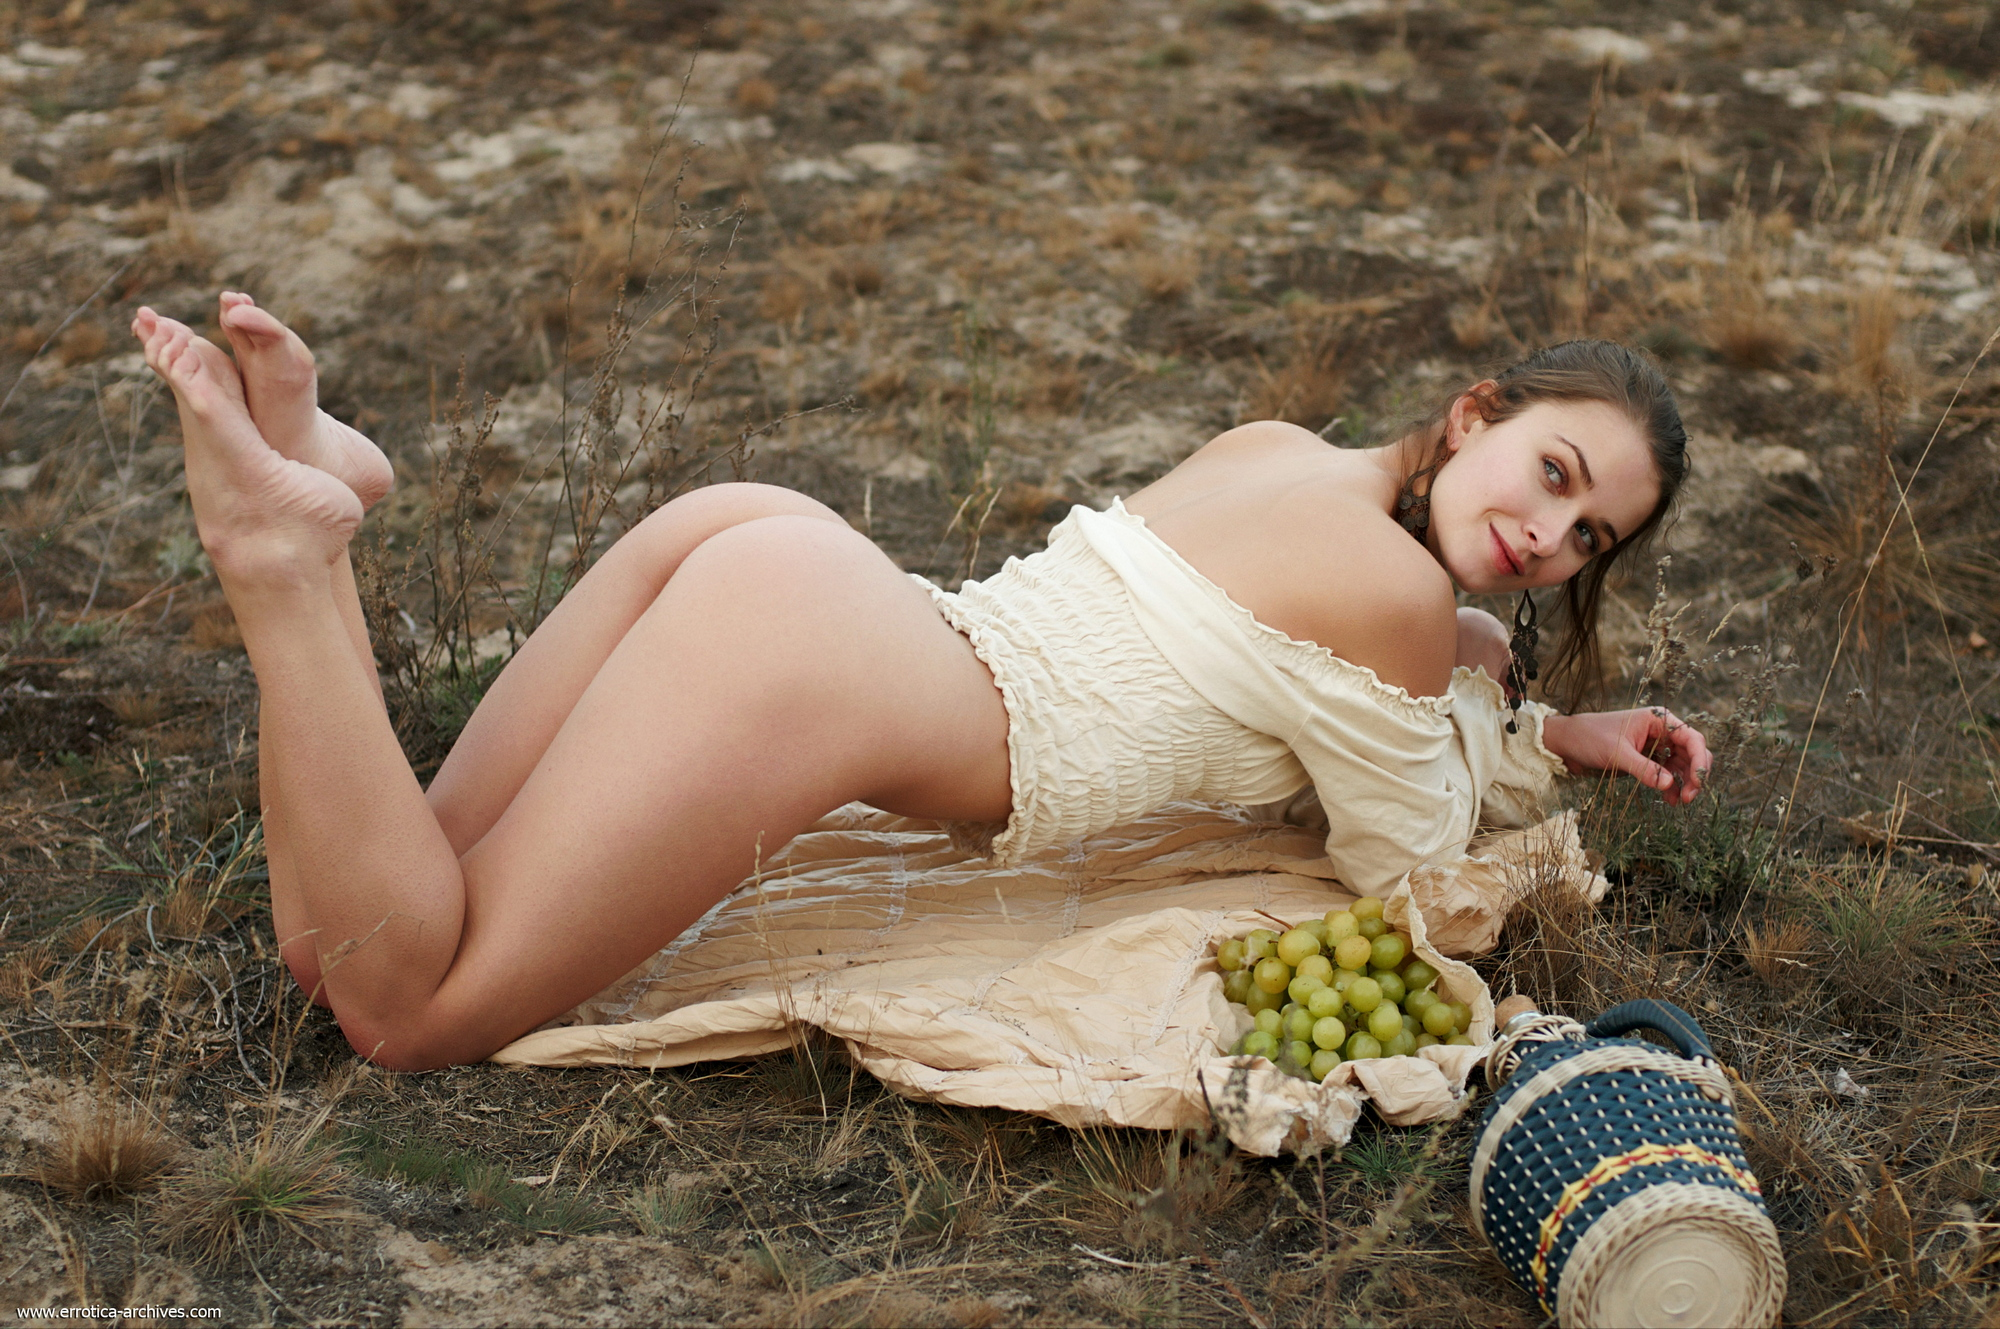 milana-naked-jug-wine-grapes-outdoor-errotica-archives-17